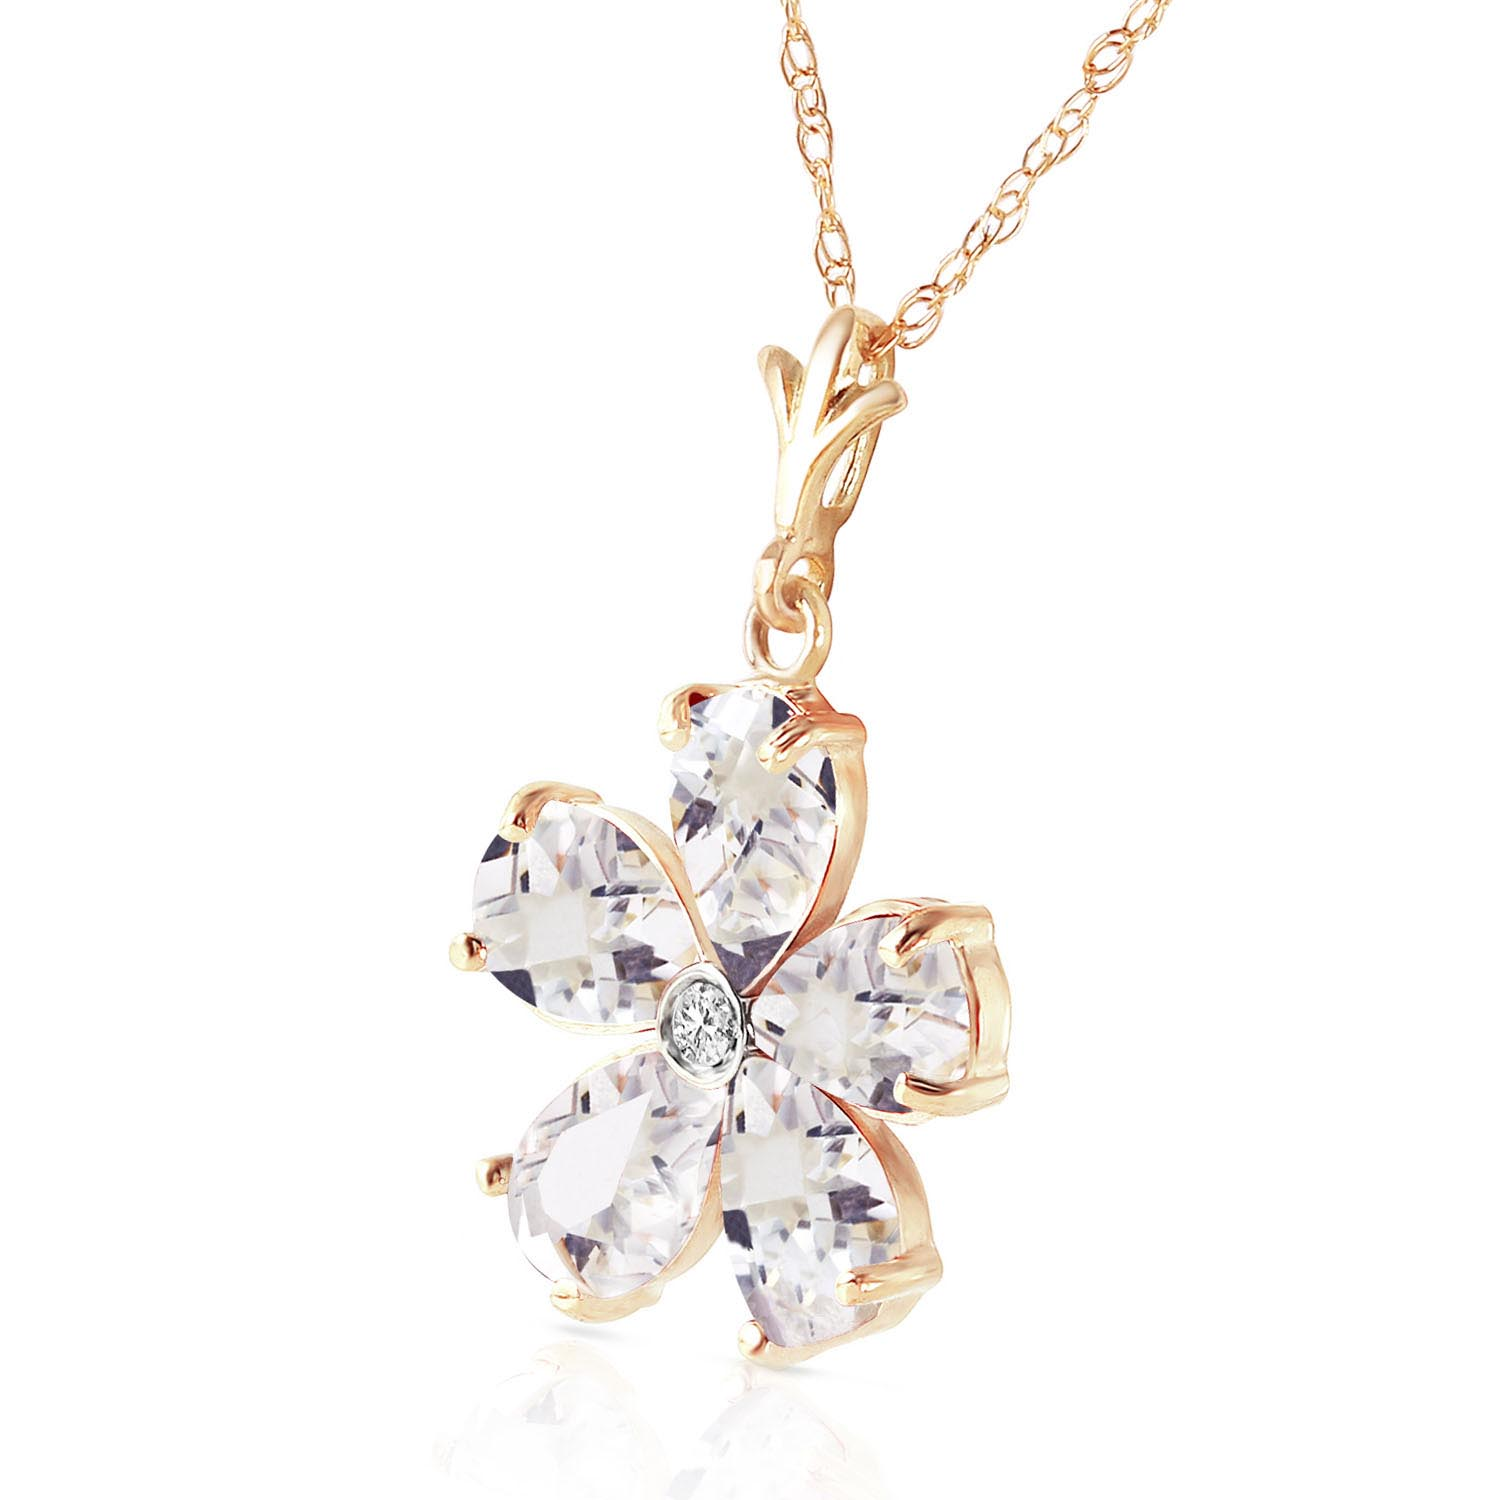 White Topaz and Diamond Flower Petal Pendant Necklace 2.2ctw in 9ct Gold